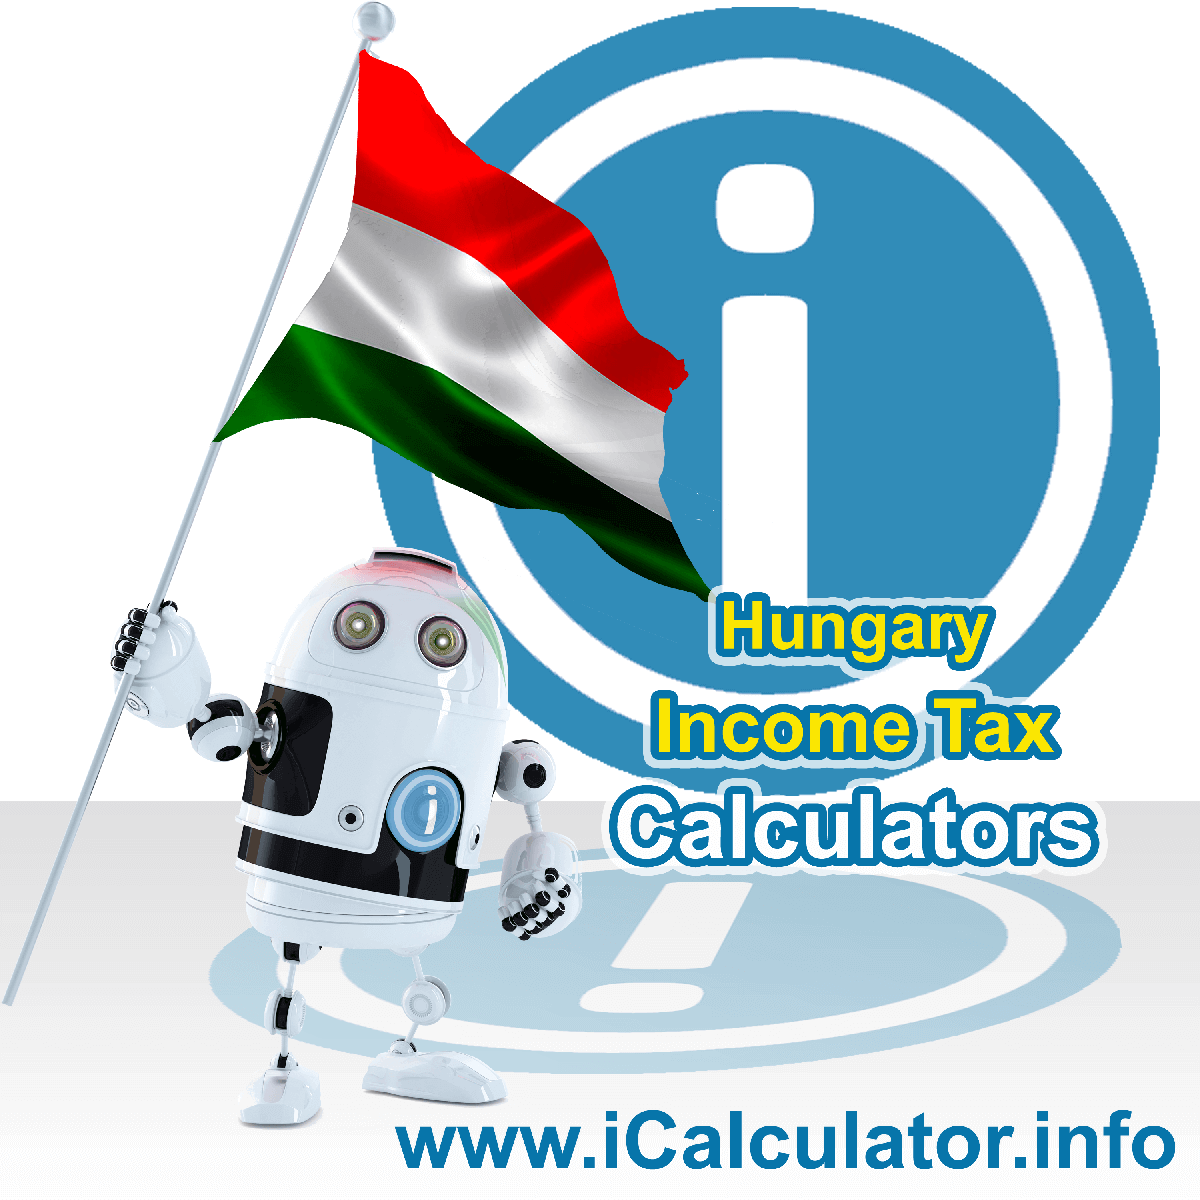 Hungary Income Tax Calculator. This image shows a new employer in Hungary calculating the annual payroll costs based on multiple payroll payments in one year in Hungary using the Hungary income tax calculator to understand their payroll costs in Hungary in 2021